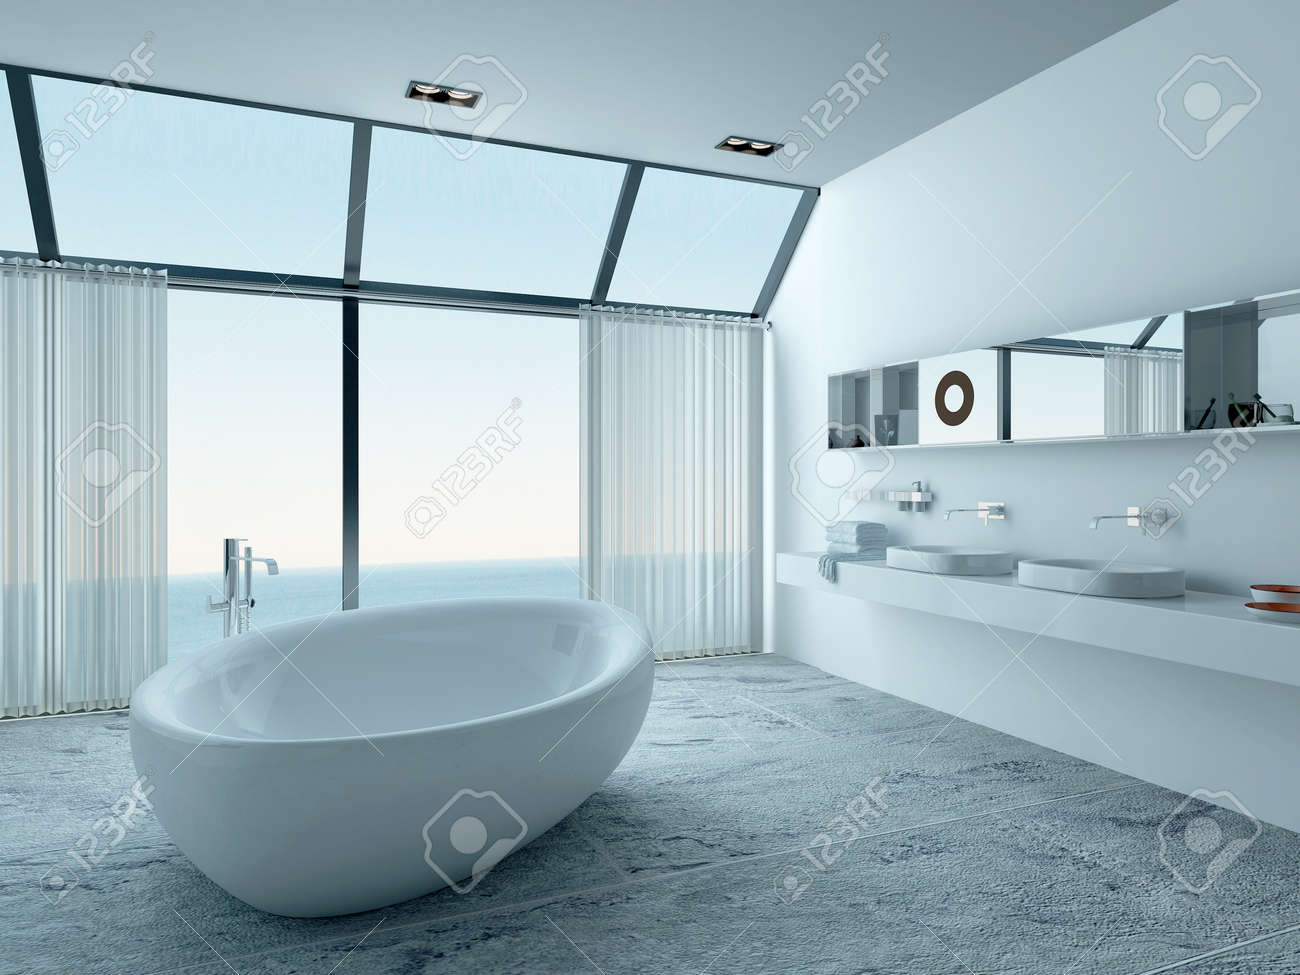 Bathroom Interior With Standalone Bathtub And Seascape View Stock Photo    28747133